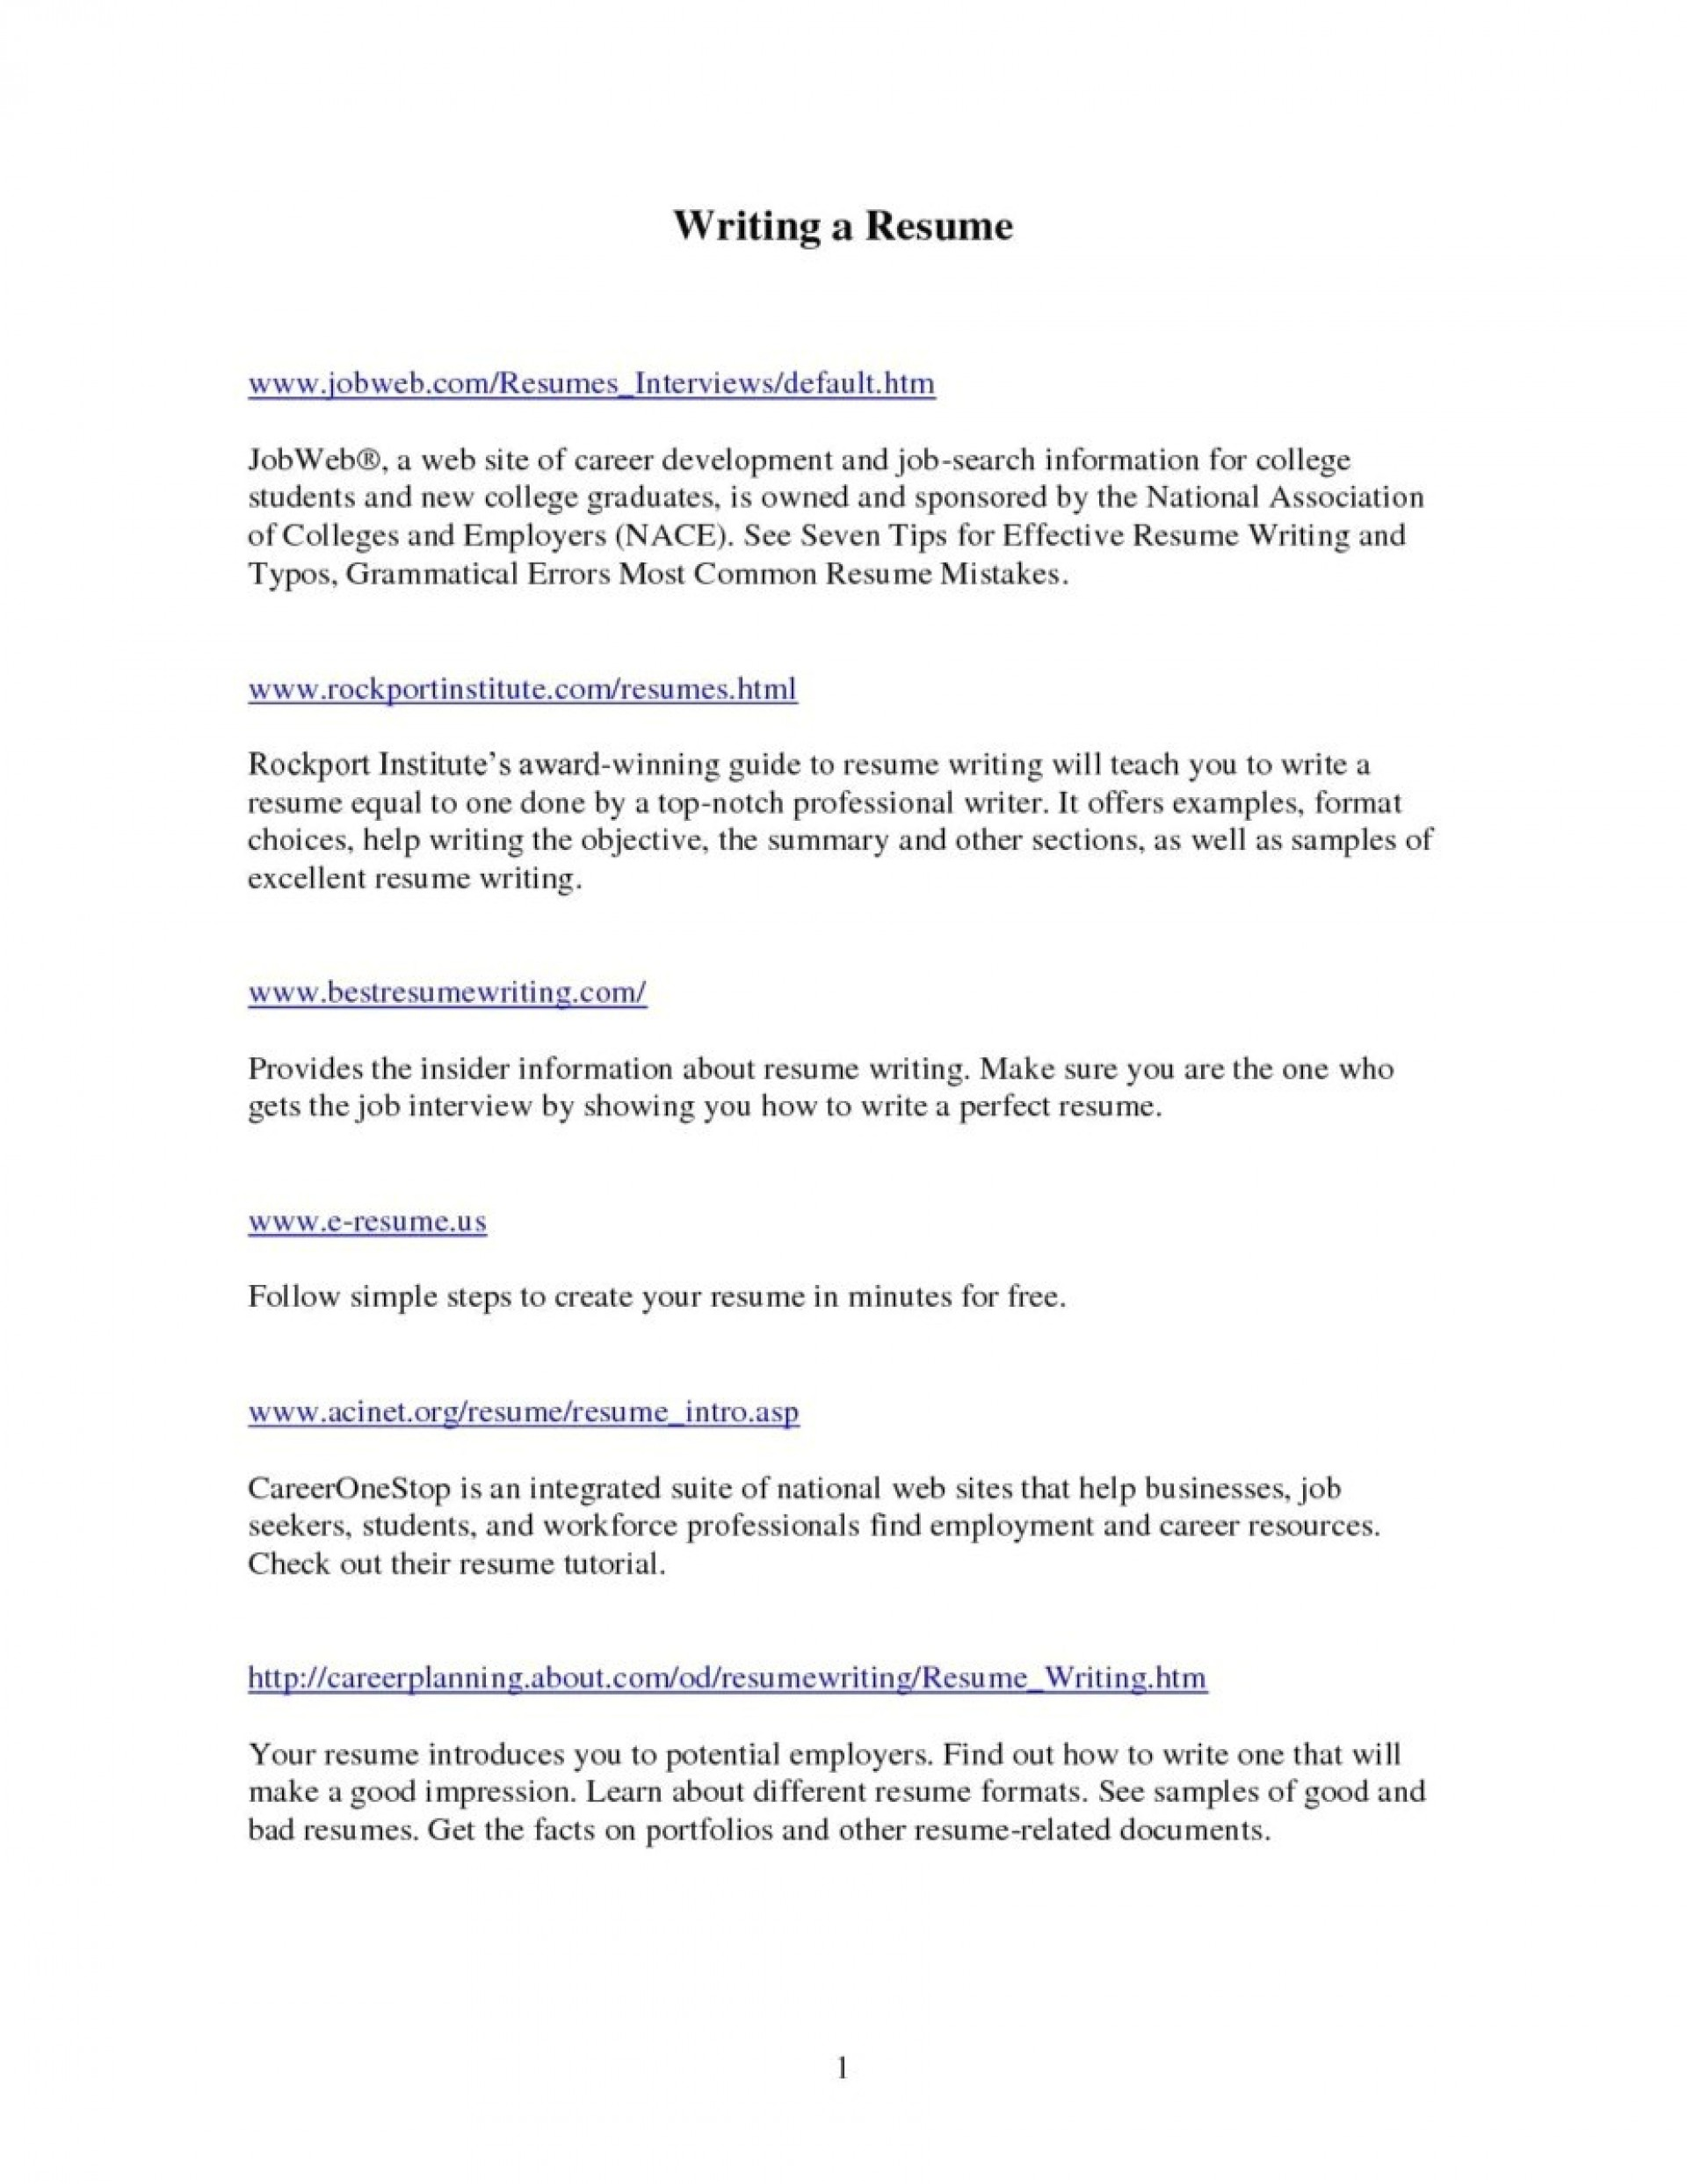 009 Research Paper Resume Writing Service Reviews Format Best Writers Inspirational Help Professional Of Free Services Essay Remarkable Outline Sample On A Person Apa Style Mla Argumentative 1920